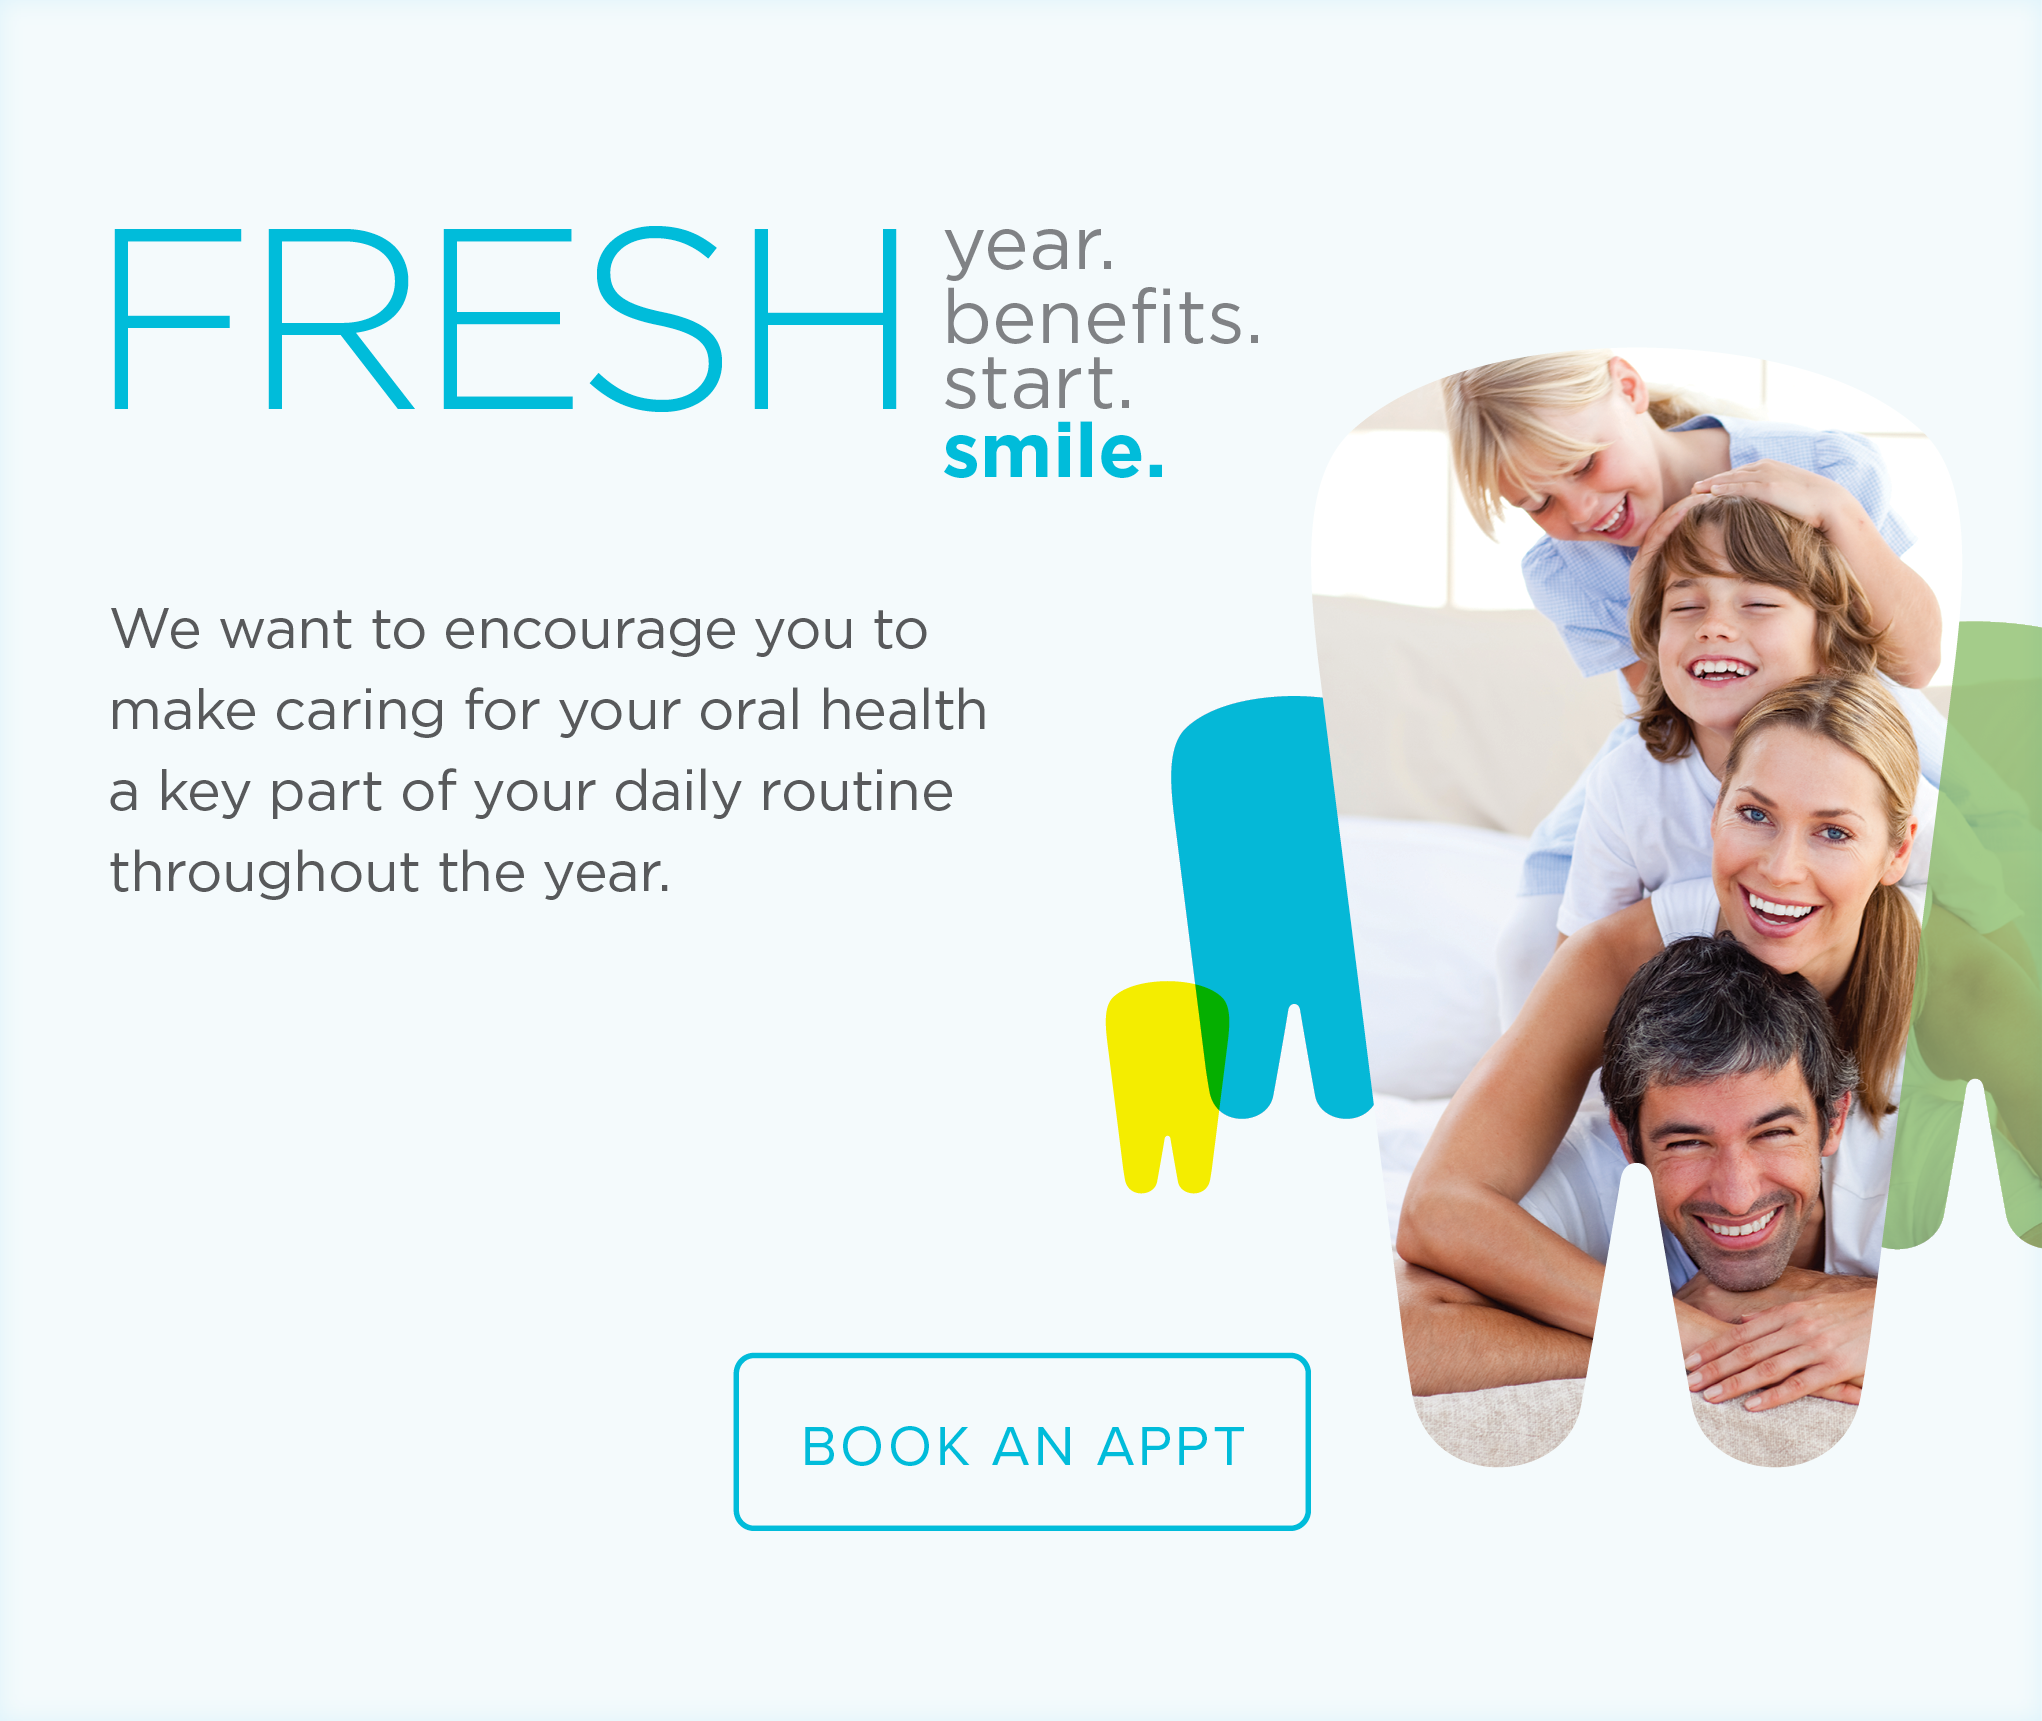 Pleasanton Ridge Dental Group and Orthodontics - Make the Most of Your Benefits